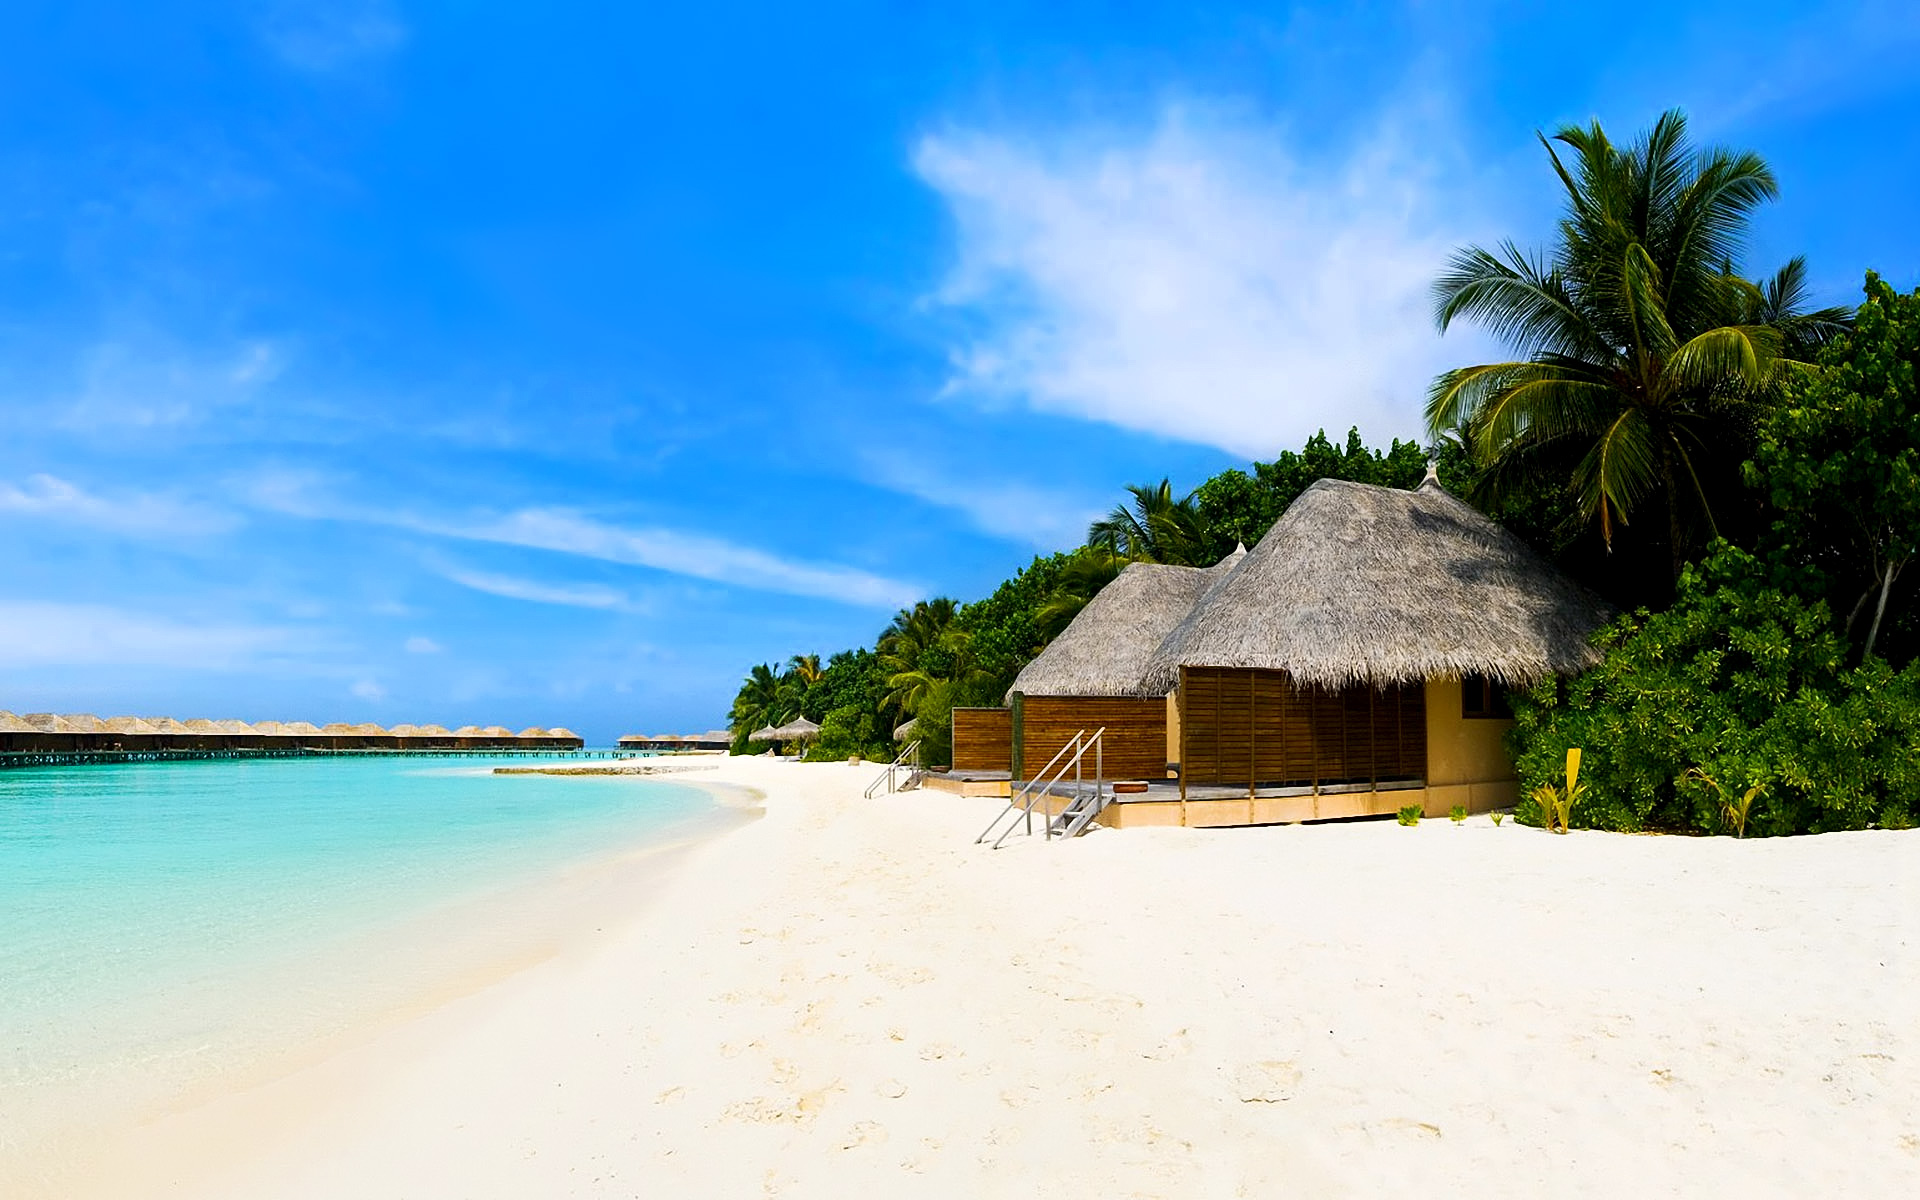 Beach bungalows on the tropical island wallpaper - Beach Wallpapers